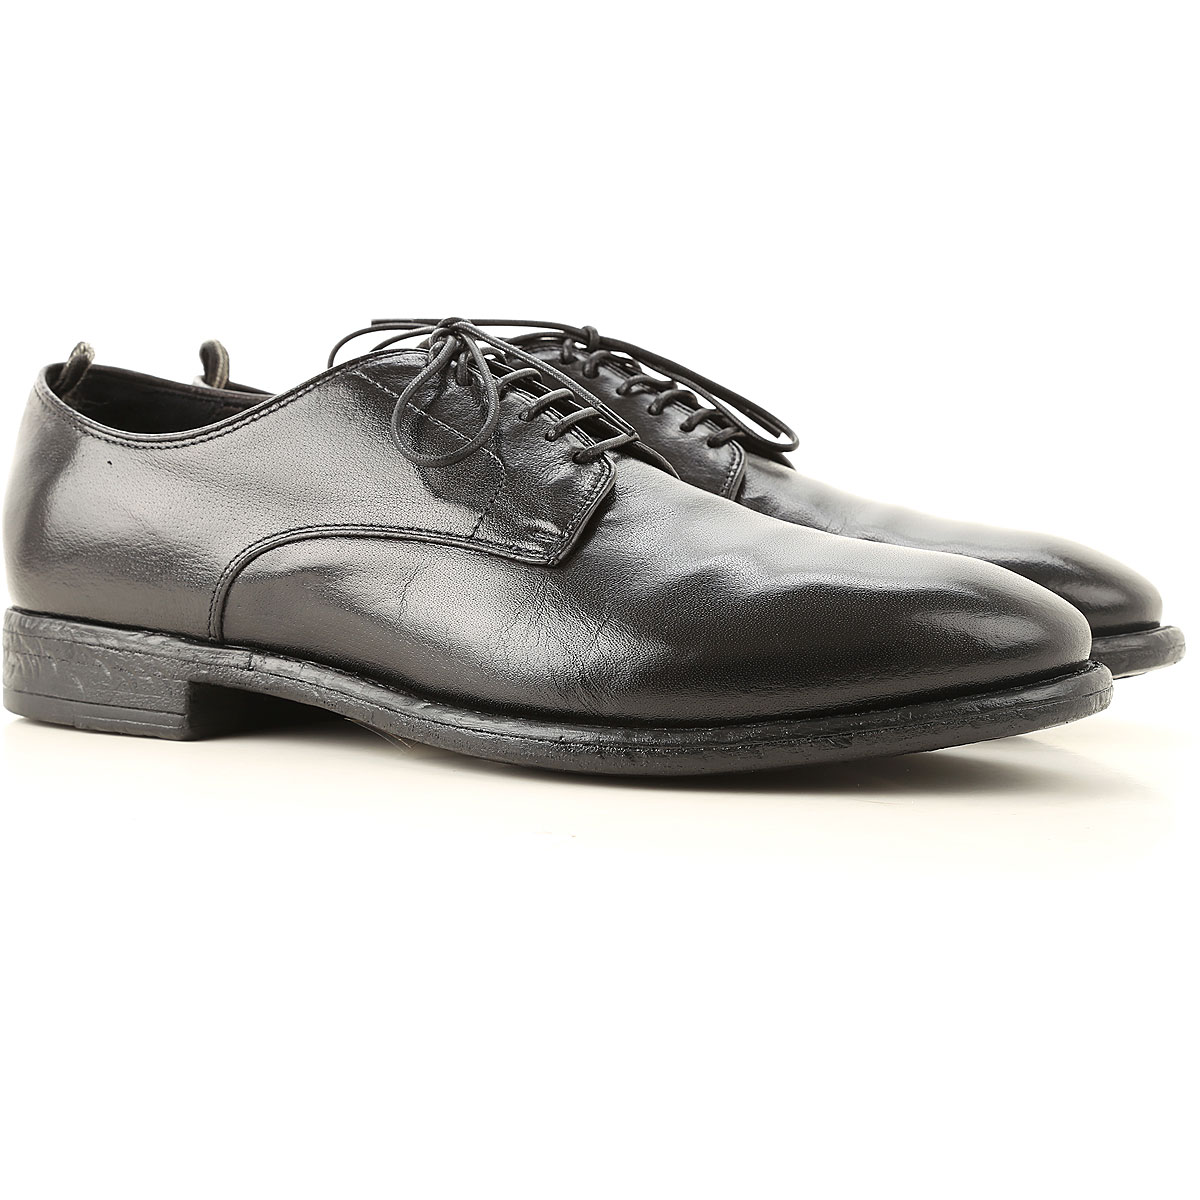 Officine Creative Lace Up Shoes for Men Oxfords, Derbies and Brogues On Sale, Black, Leather, 2019, 10 10.5 11 12 6.5 7 7.5 7.75 8 8.5 9 9.5